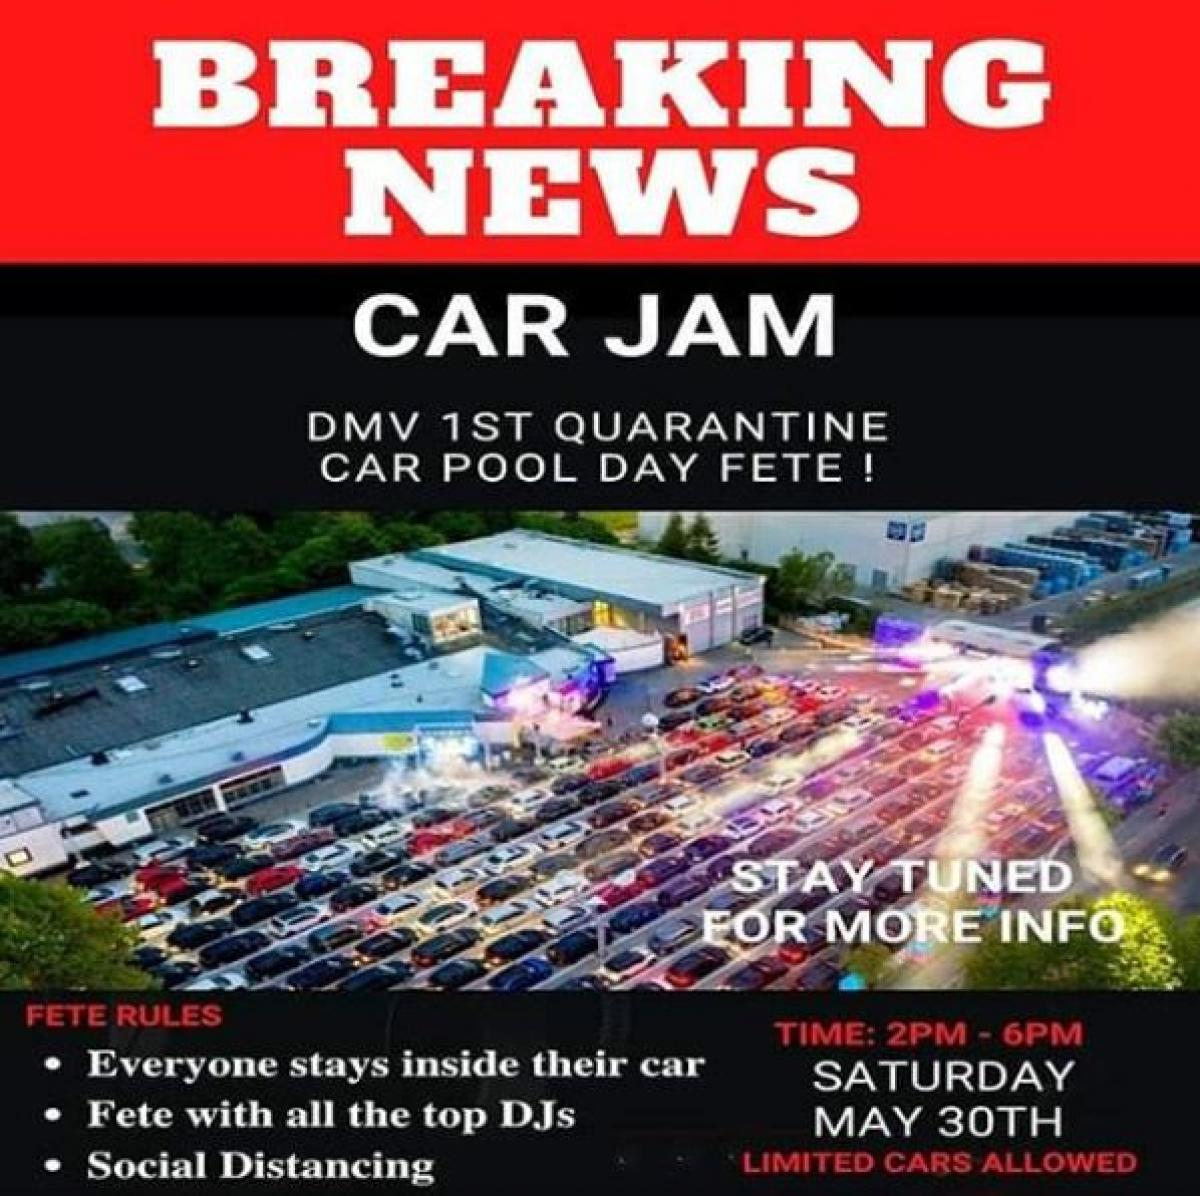 Car Jam flyer or graphic.